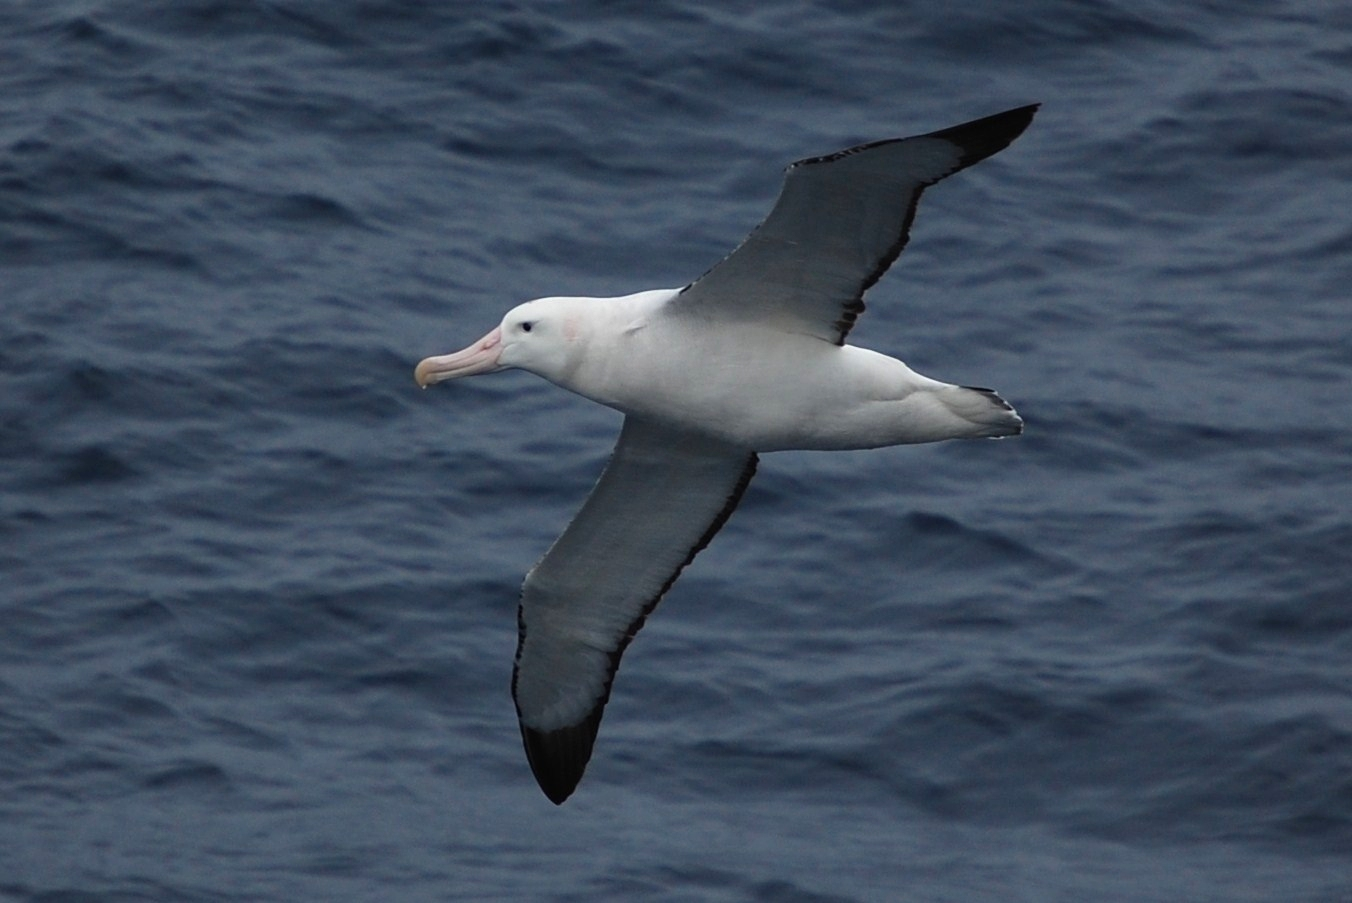 File:Wandering albatross 0676.jpg - The Work of God's Children